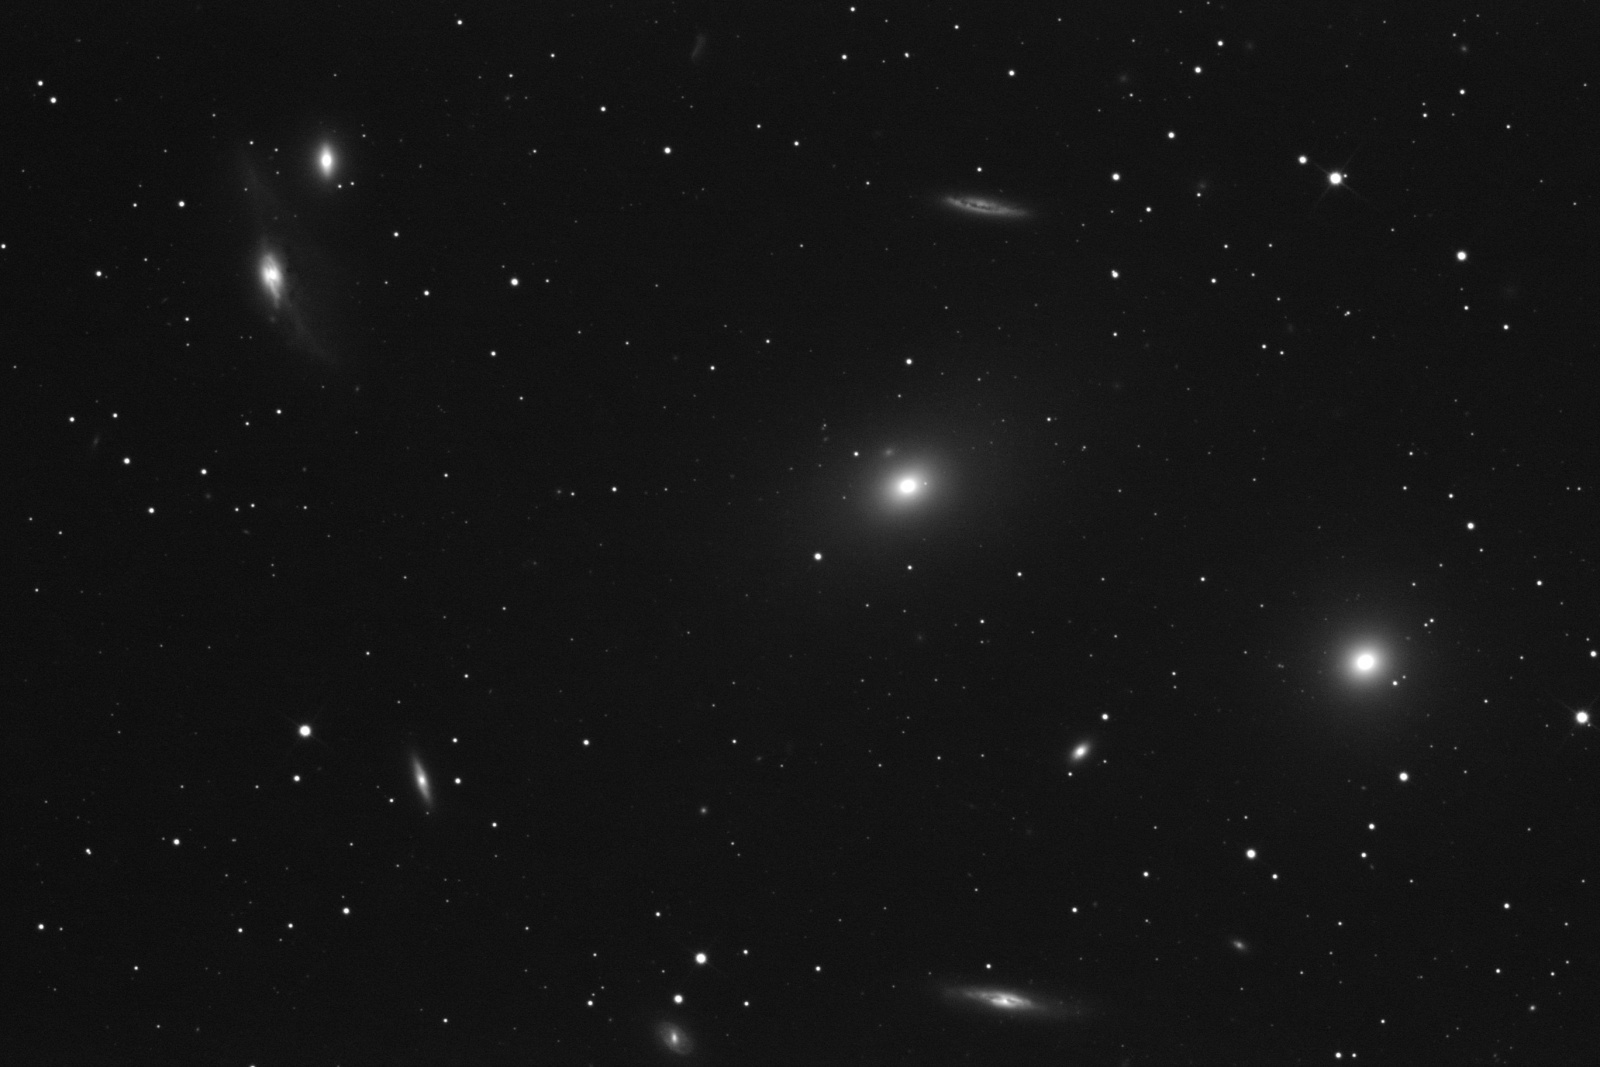 Markarian_all_stacked_adj_res.jpg